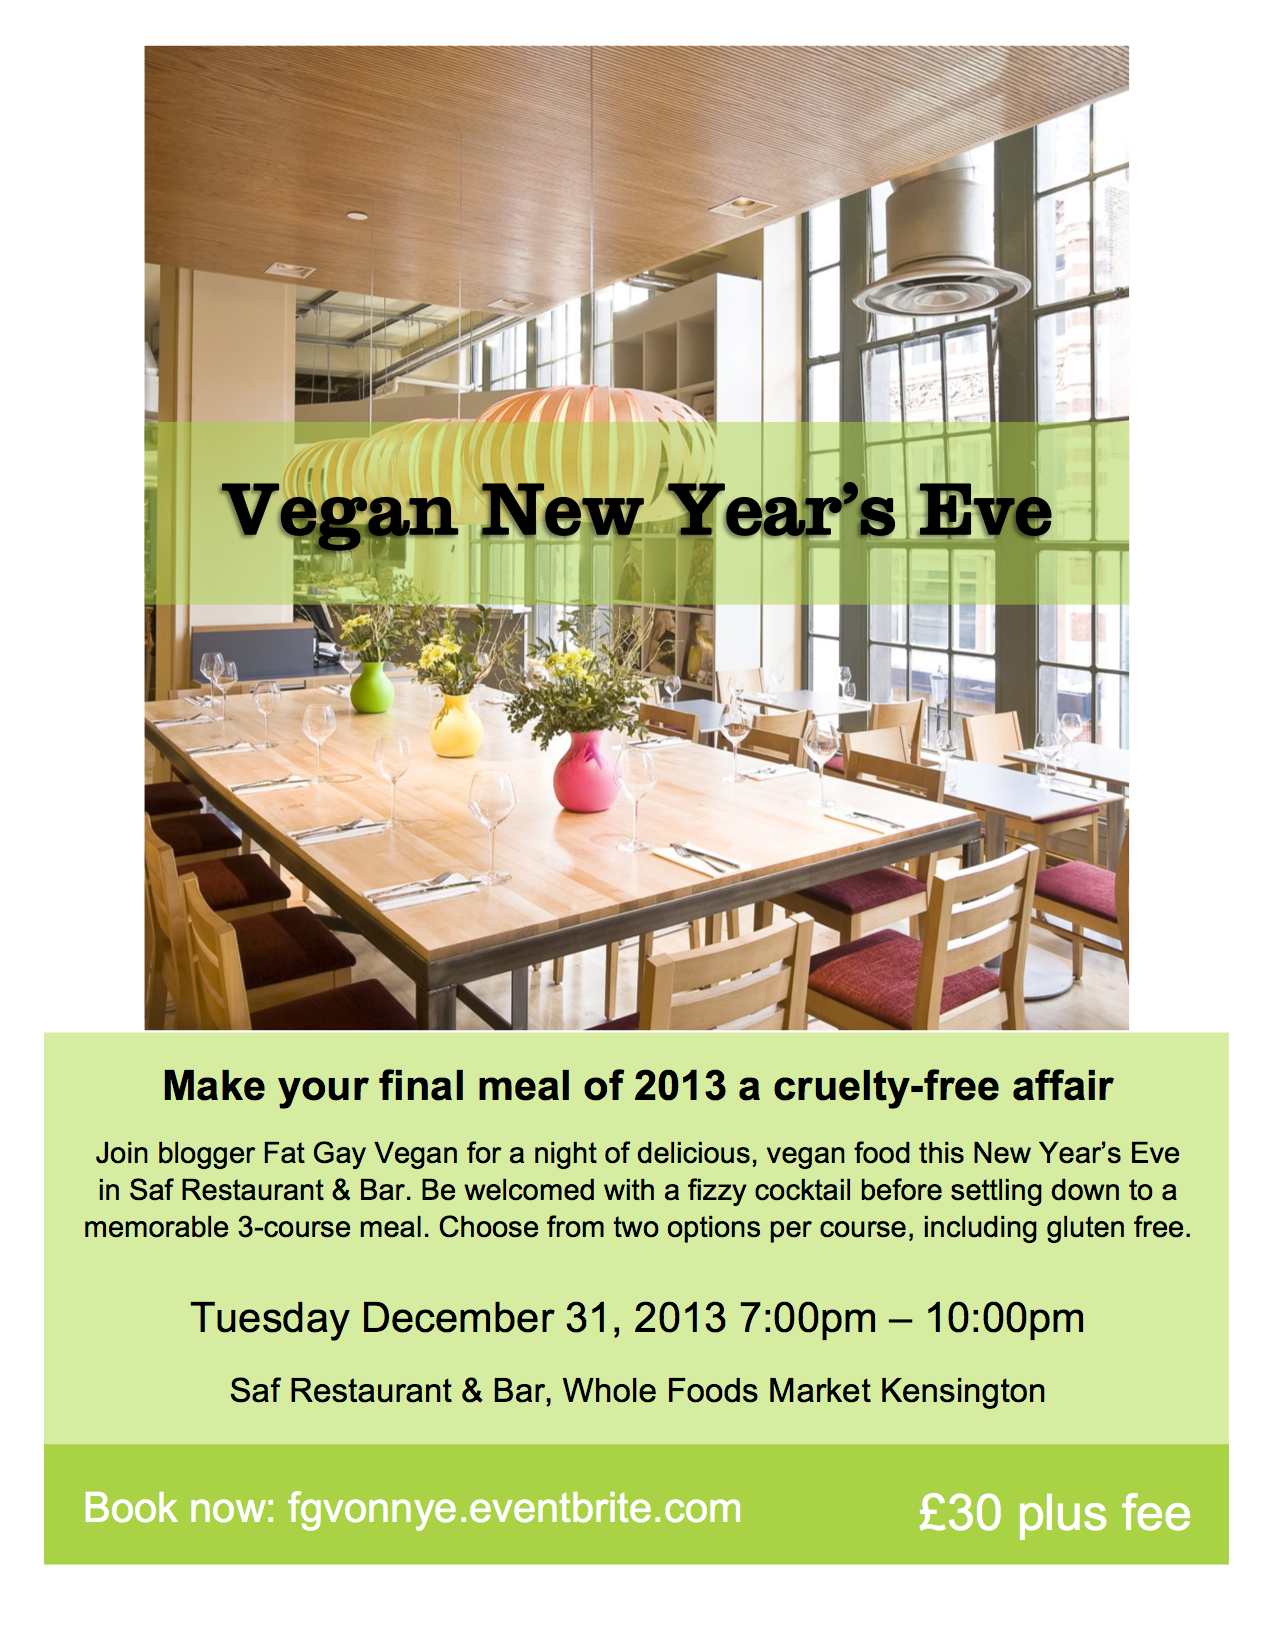 https://i1.wp.com/fatgayvegan.com/wp-content/uploads/2013/12/flyer-nye-copy.jpg?fit=1275%2C1650